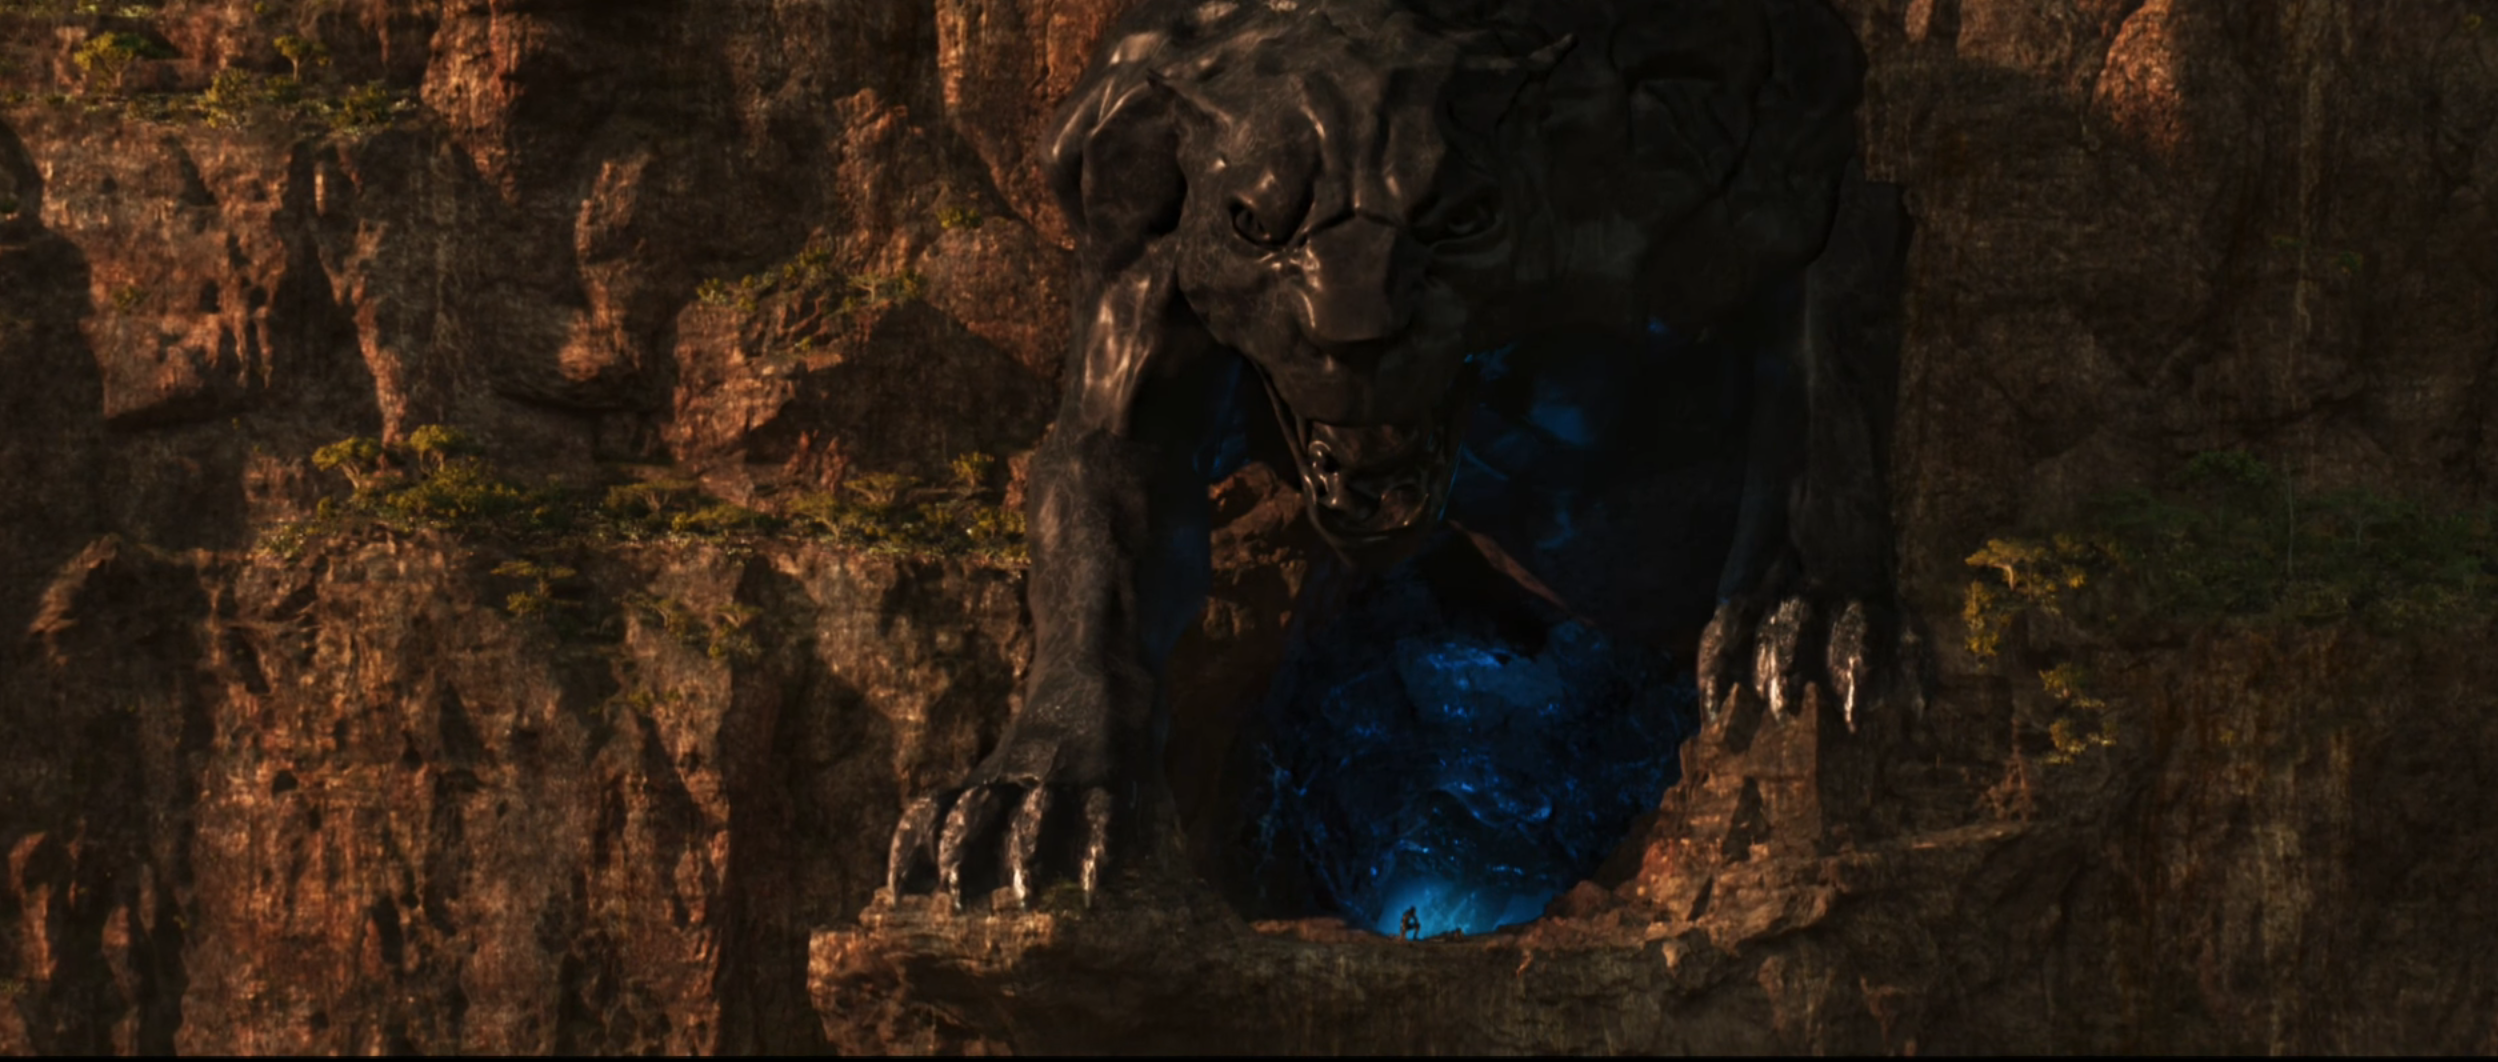 Black Panther Cave